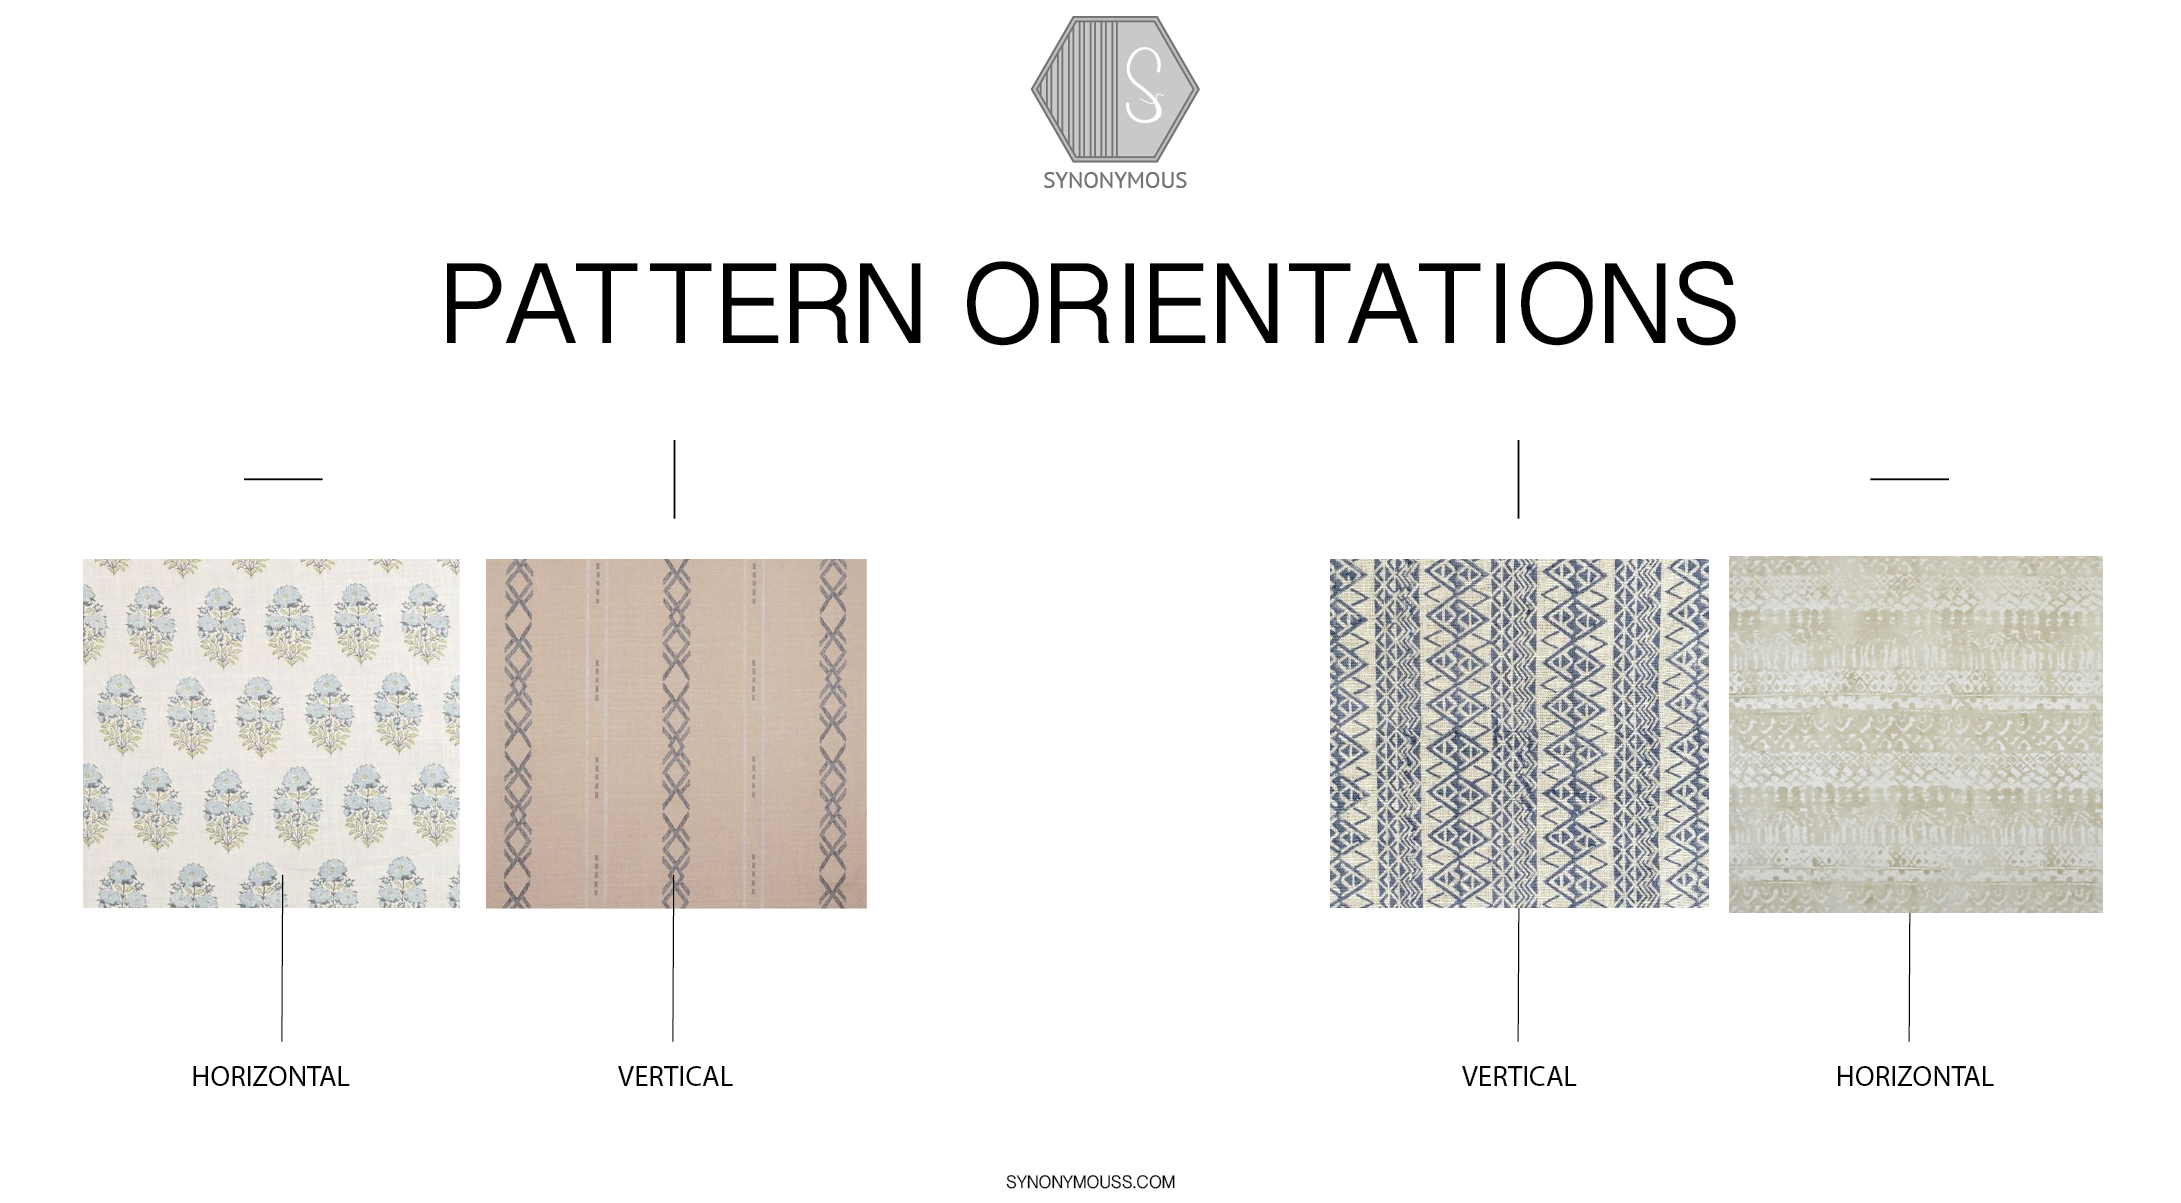 Design Study: How To Mix Patterns (Pattern Orientations) - SYNONYMOUS